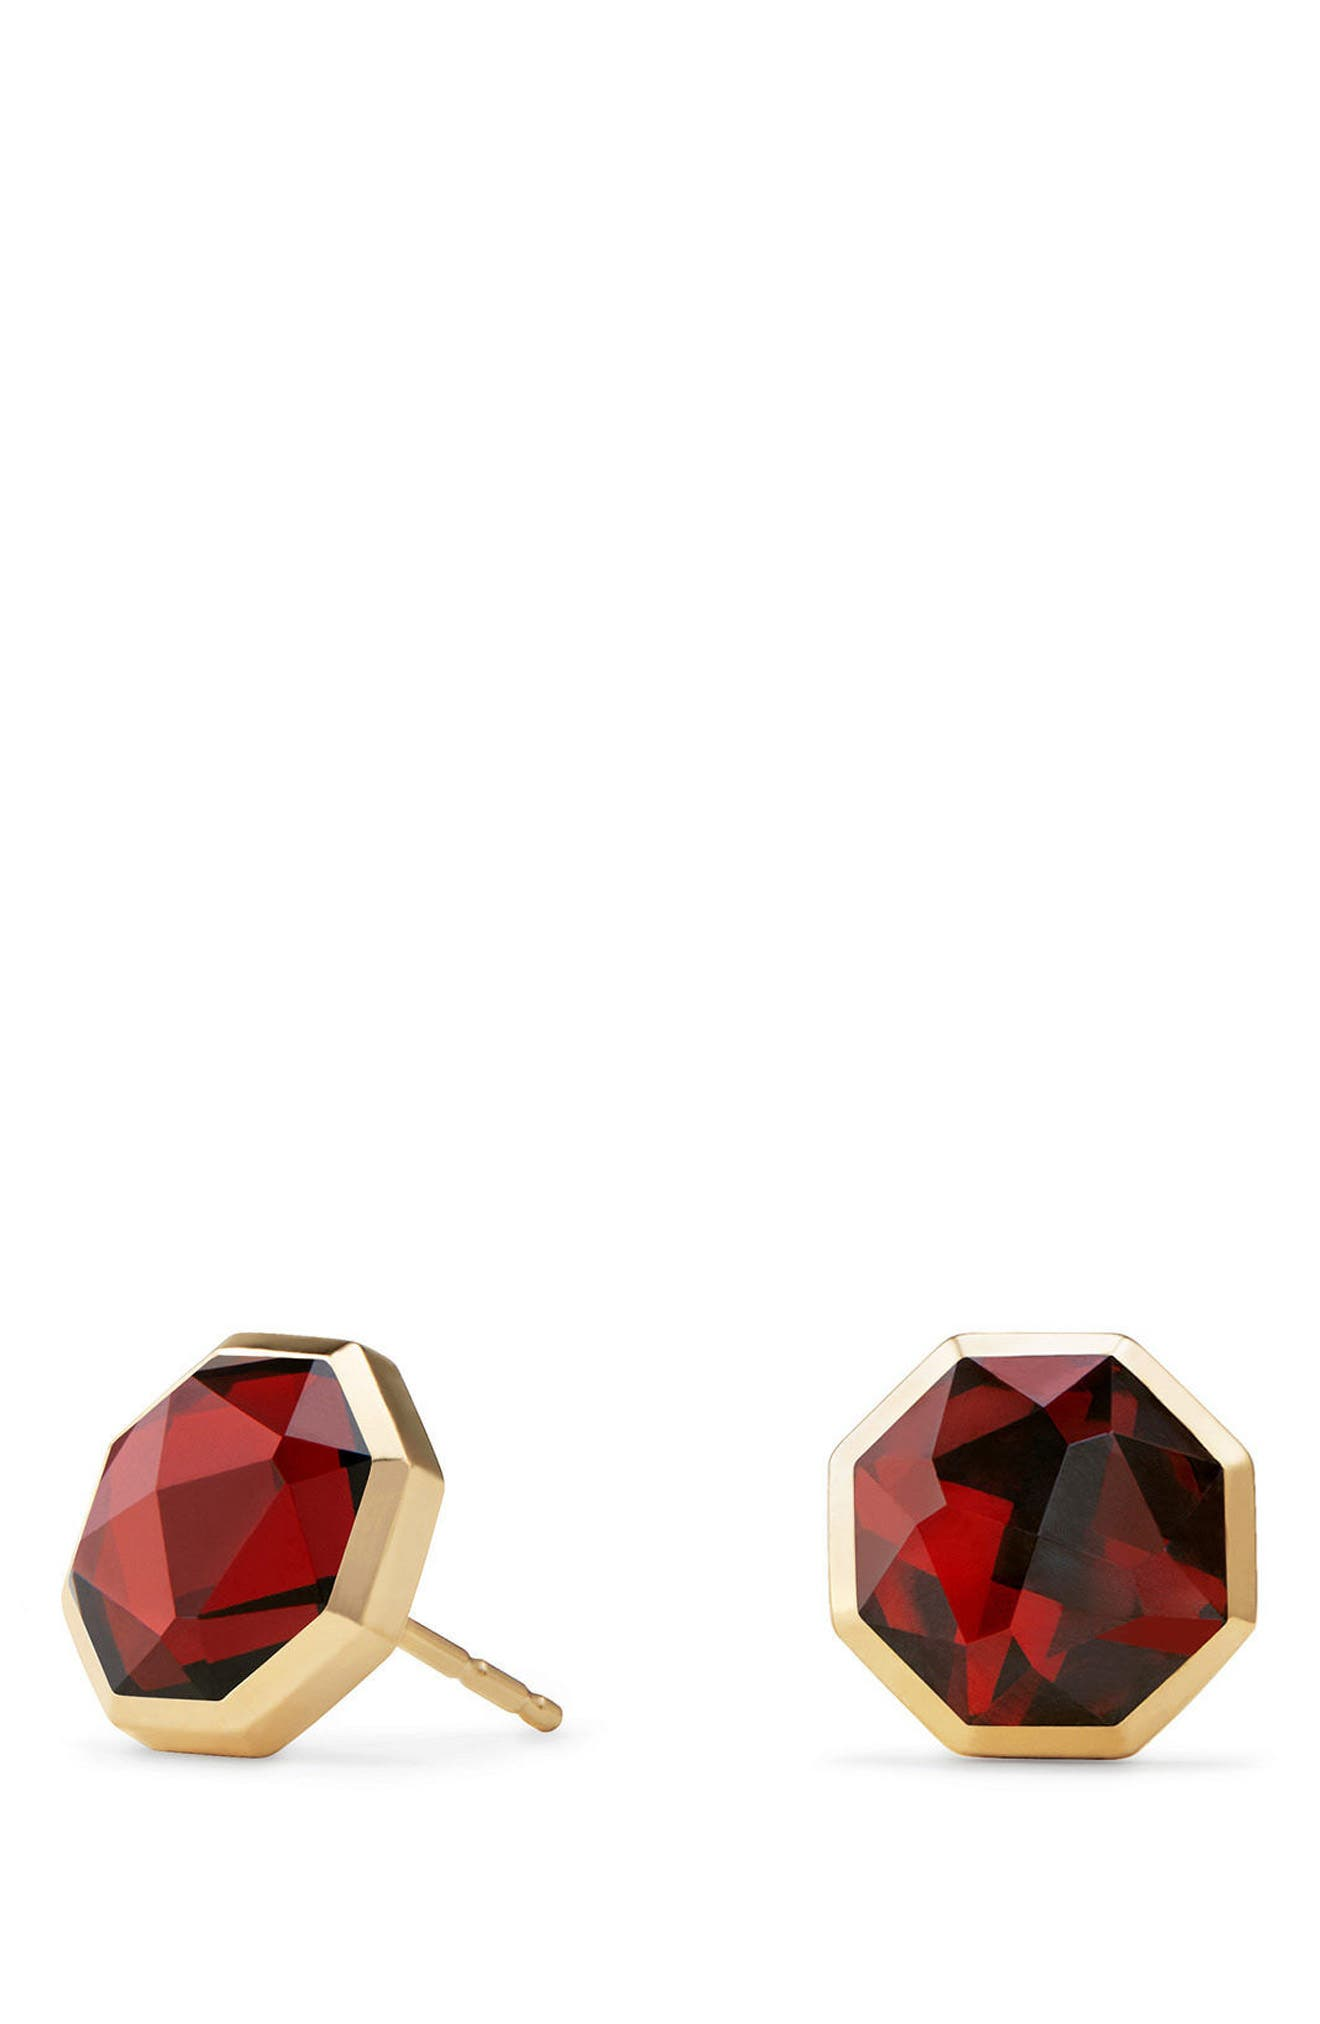 Guilin Octagon Earrings in 18K Gold,                             Main thumbnail 1, color,                             710